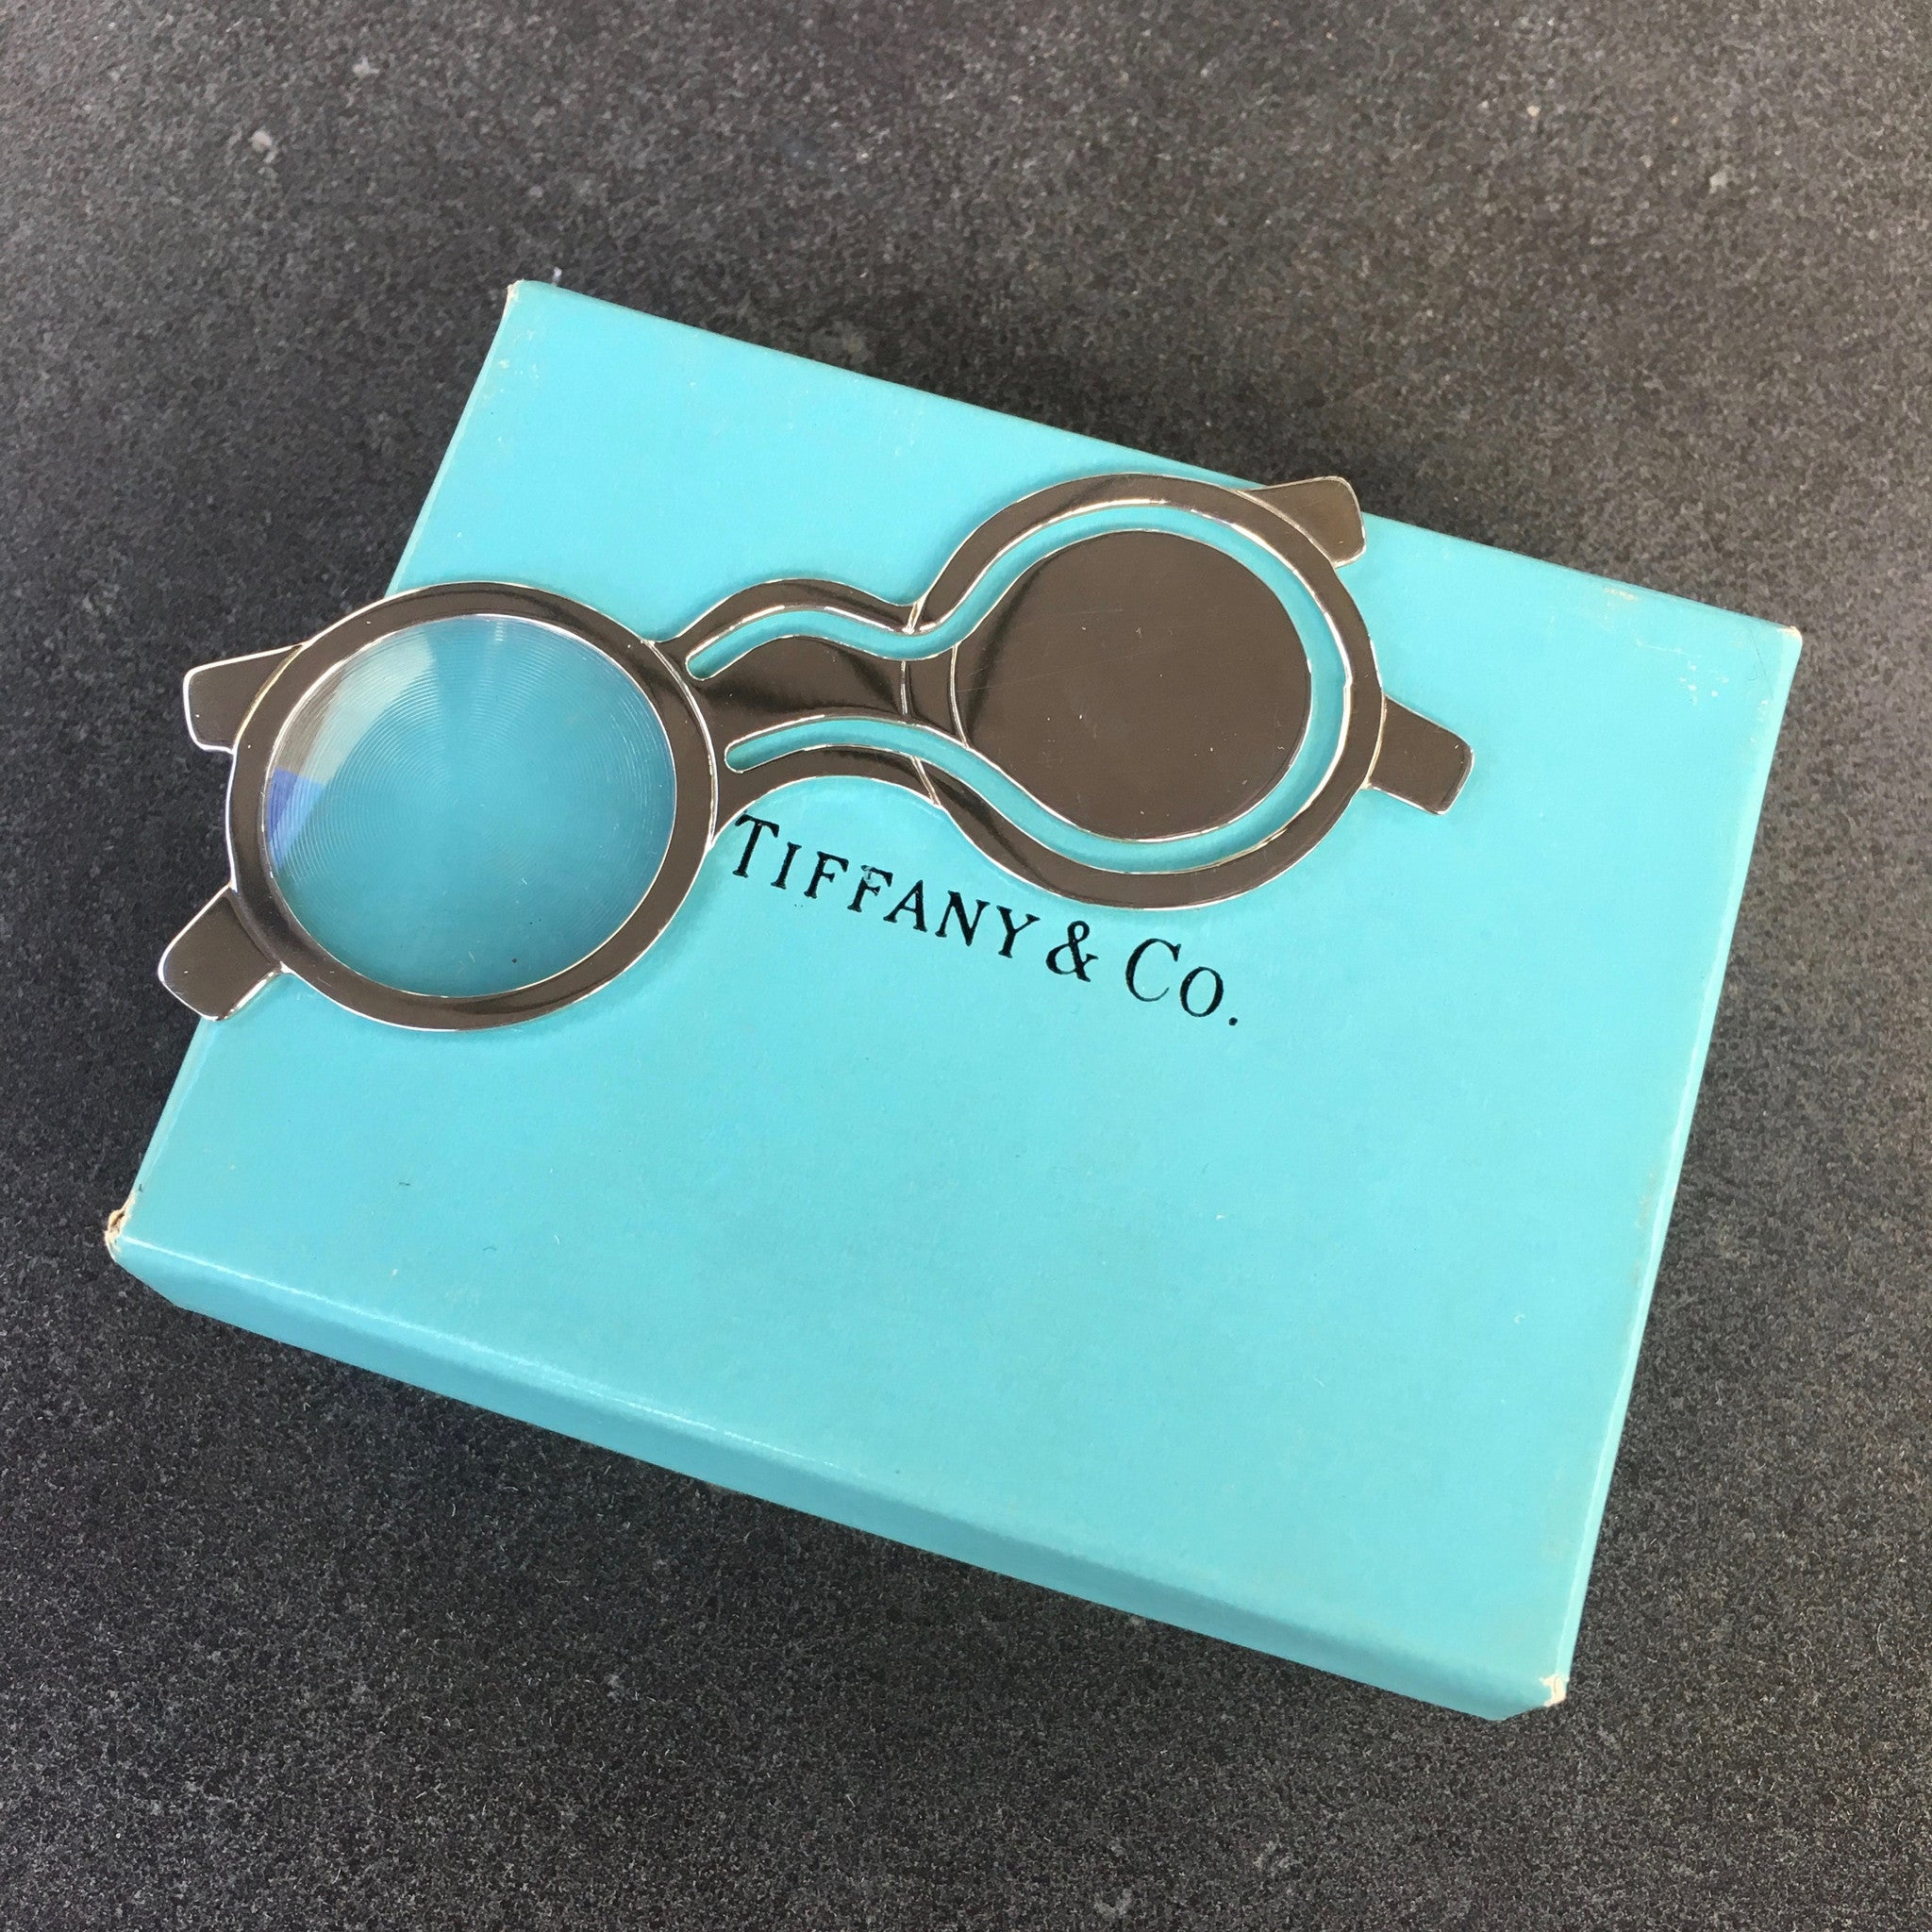 Tiffany & Co. Sterling Silver .925 Spectacles Eyeglasses Bookmark